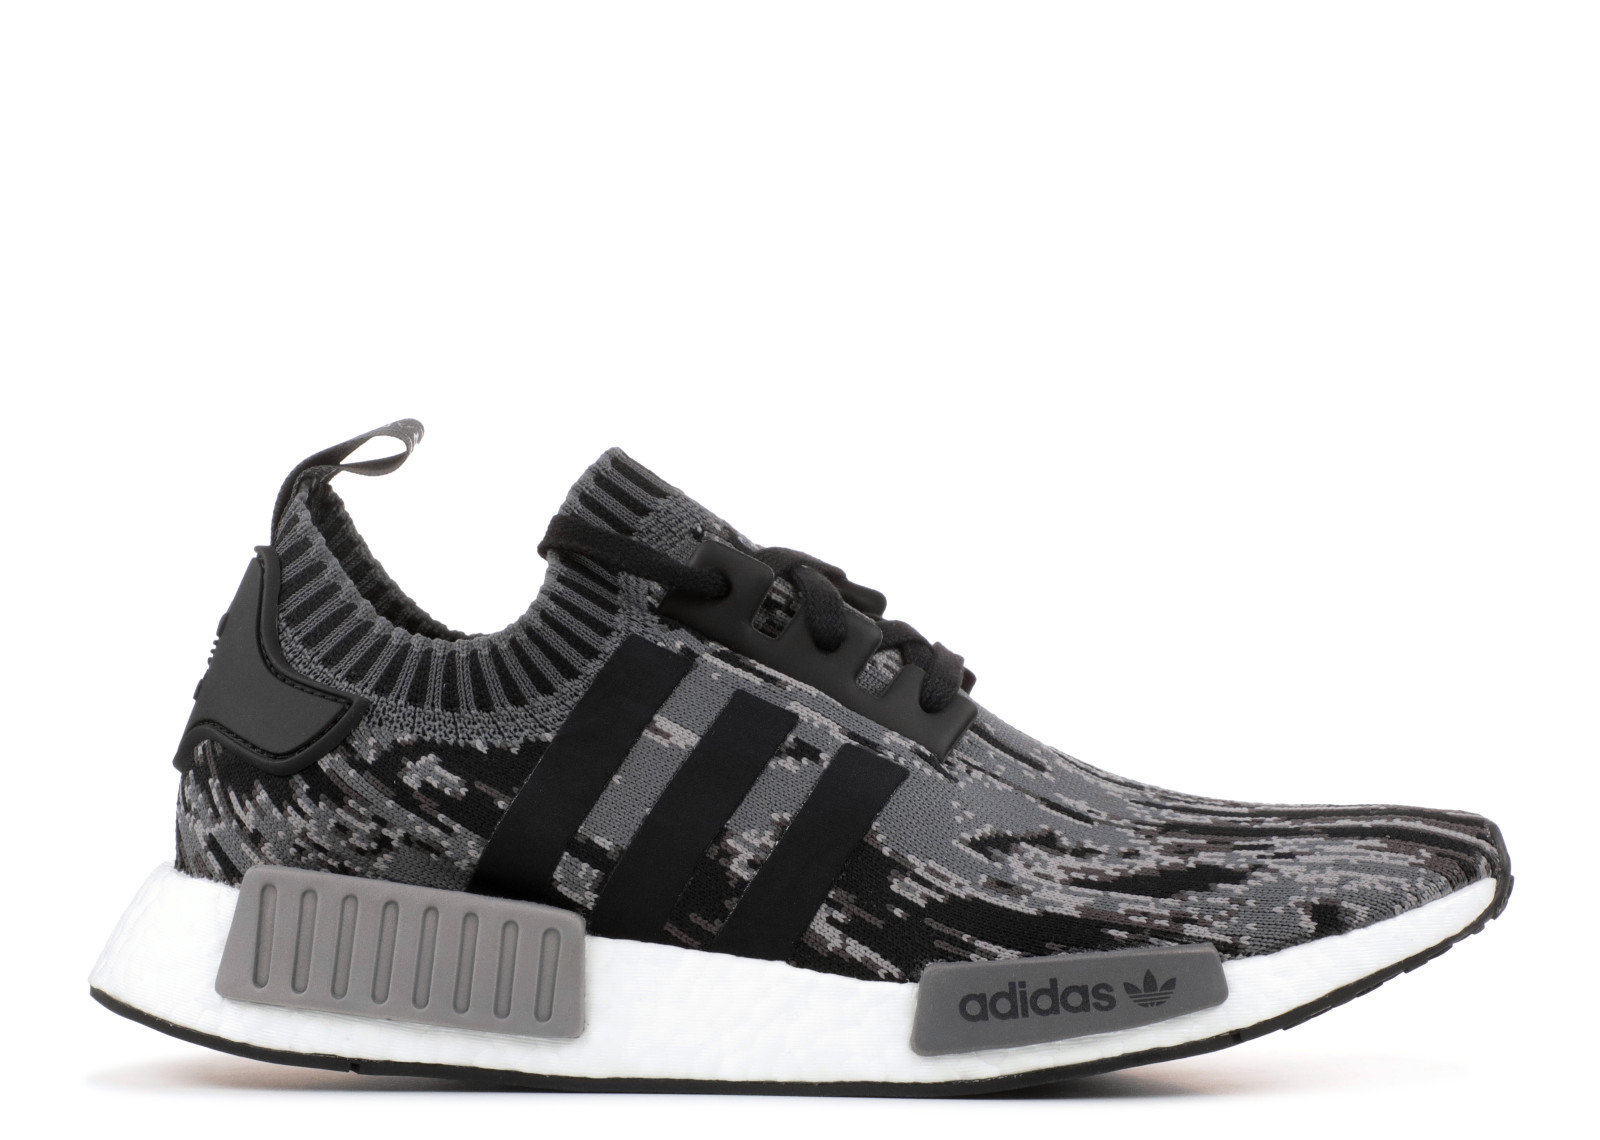 on sale e4394 d5258 Adidas NMD R1 Primeknit